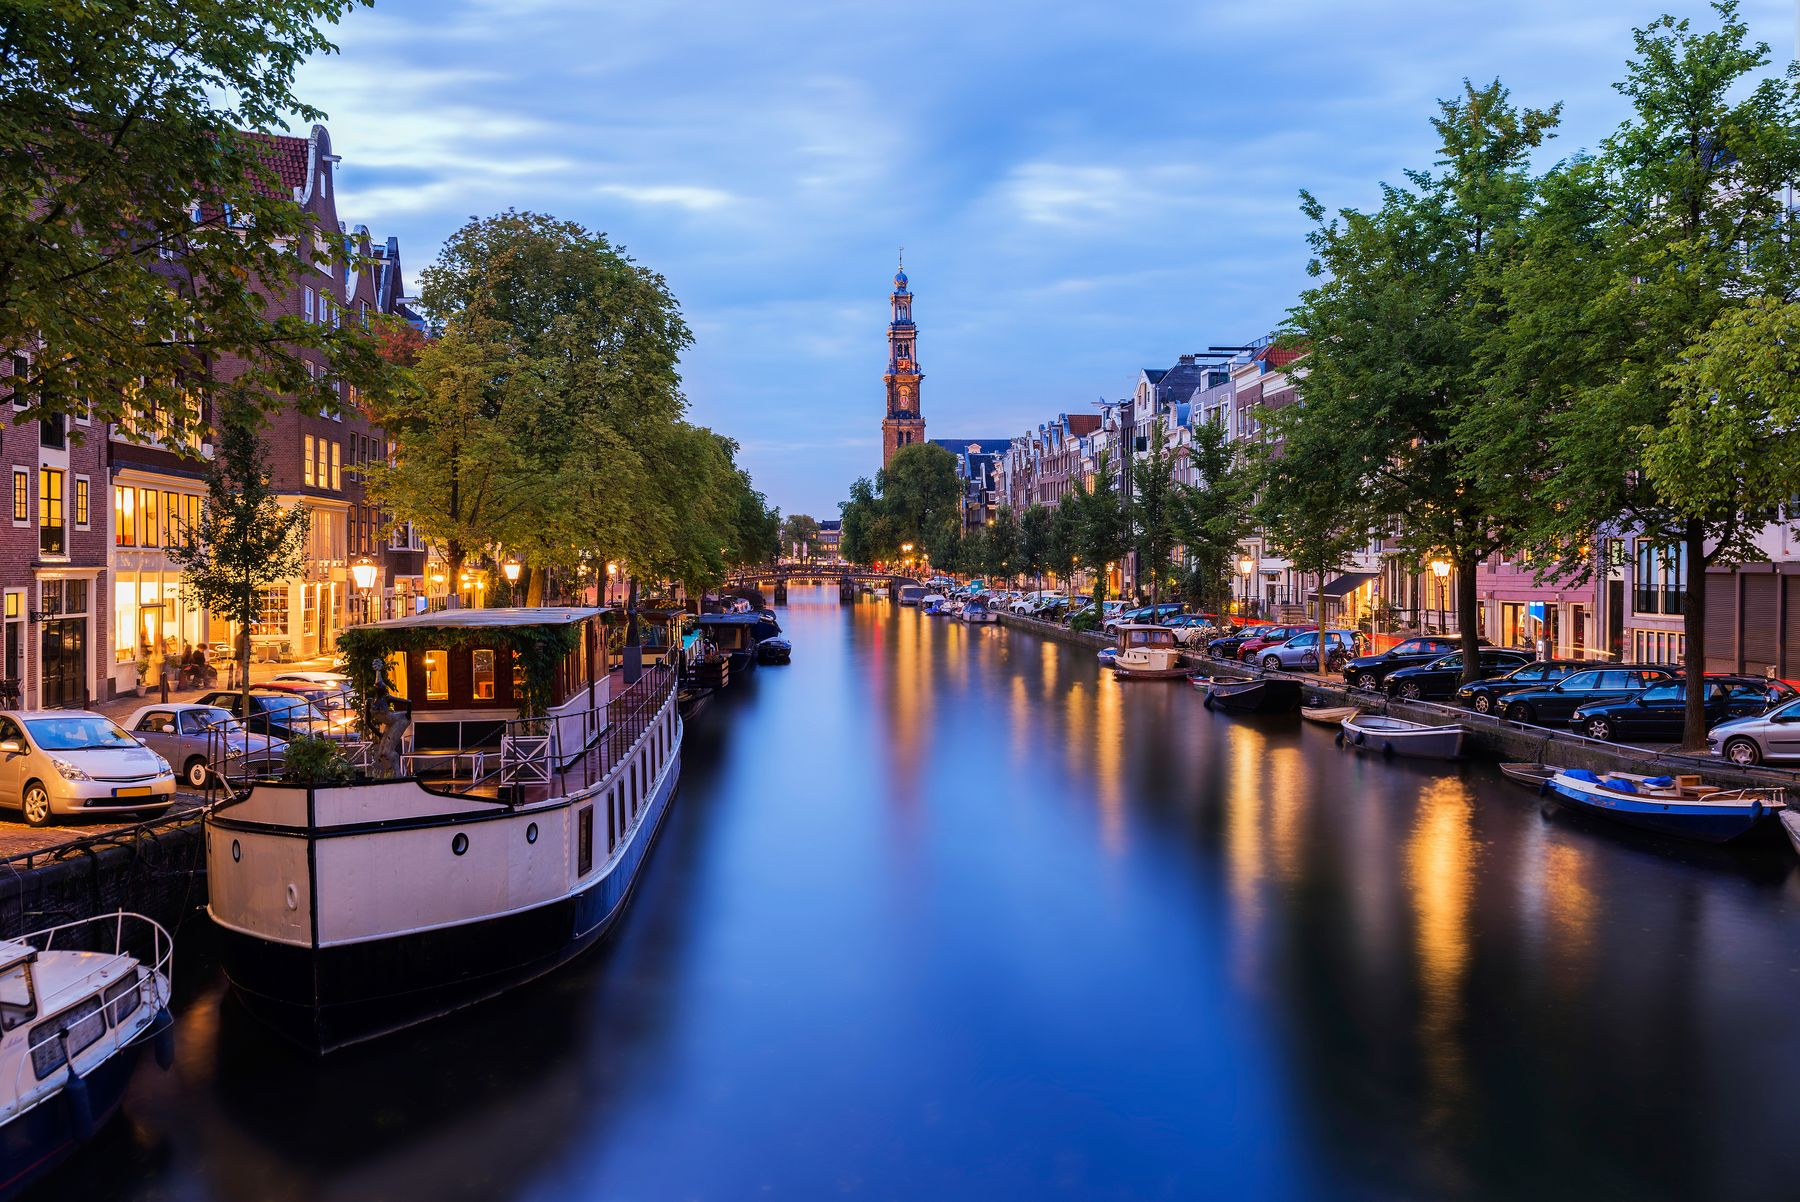 Pedal the canals of Amsterdam